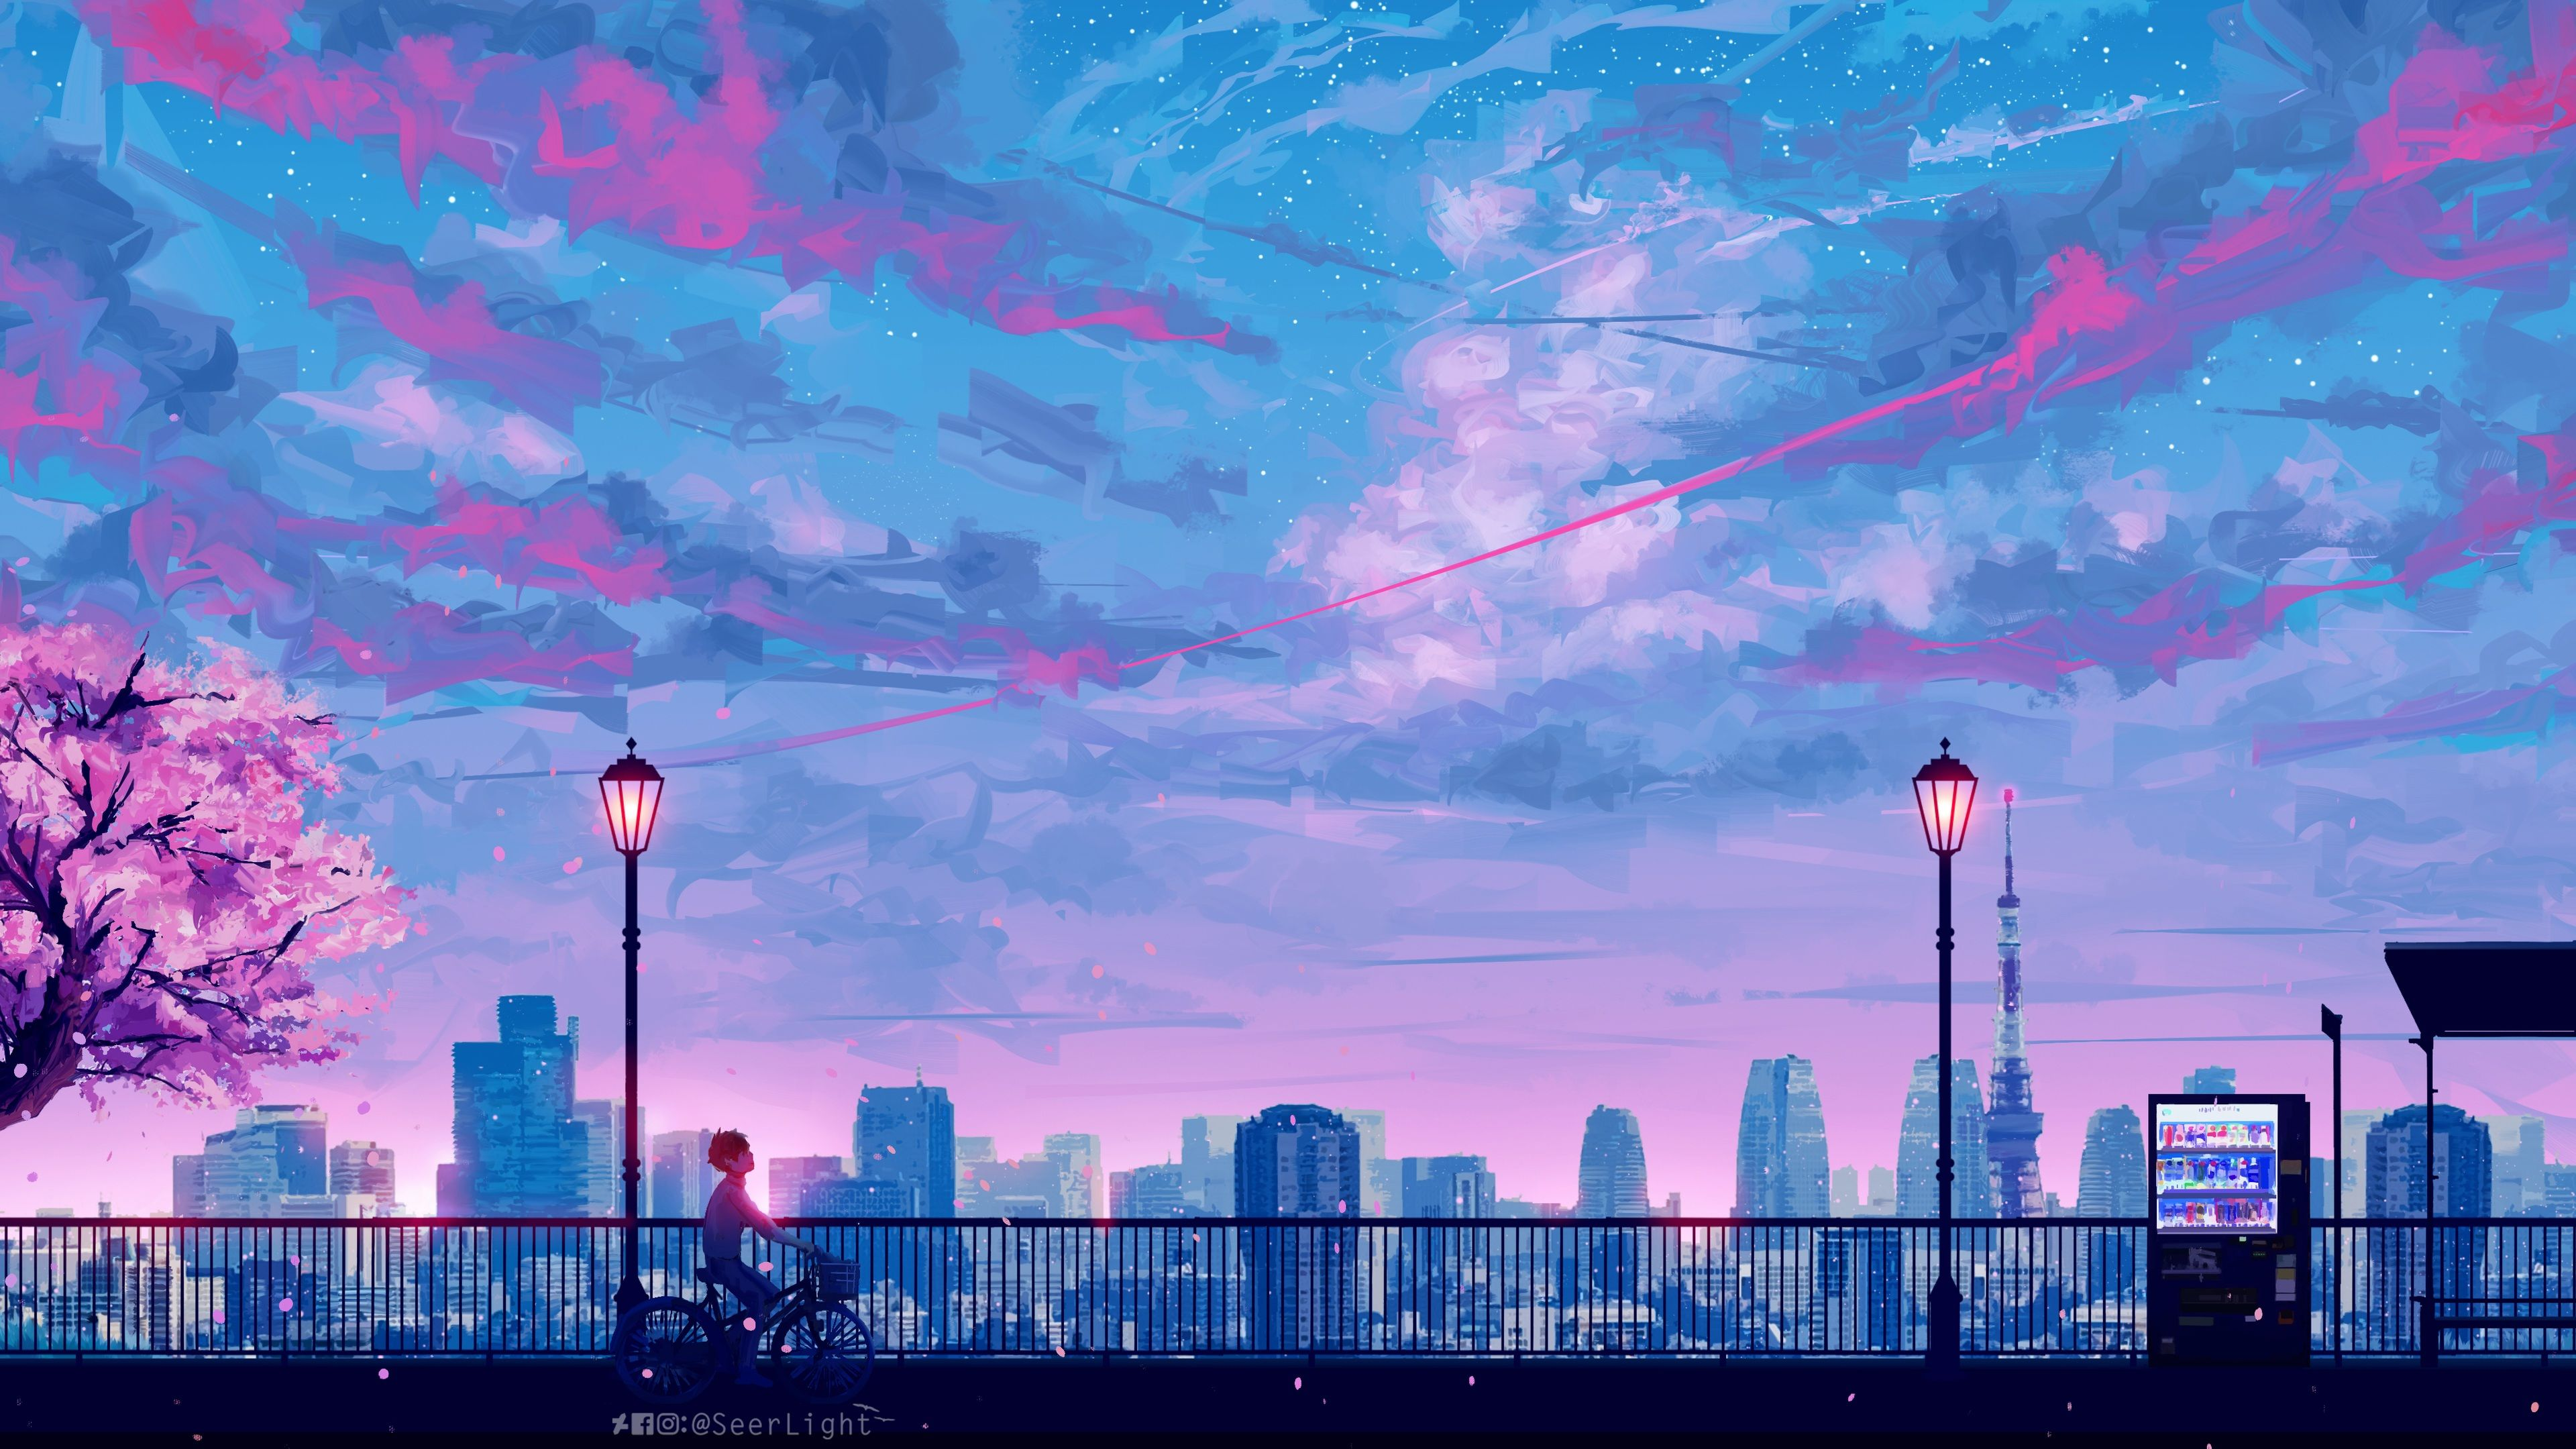 Anime Wallpaper Dual Screen We Present You Our Collection Of Desktop Wallpaper Theme If You In 2020 Scenery Wallpaper Cityscape Wallpaper Aesthetic Desktop Wallpaper